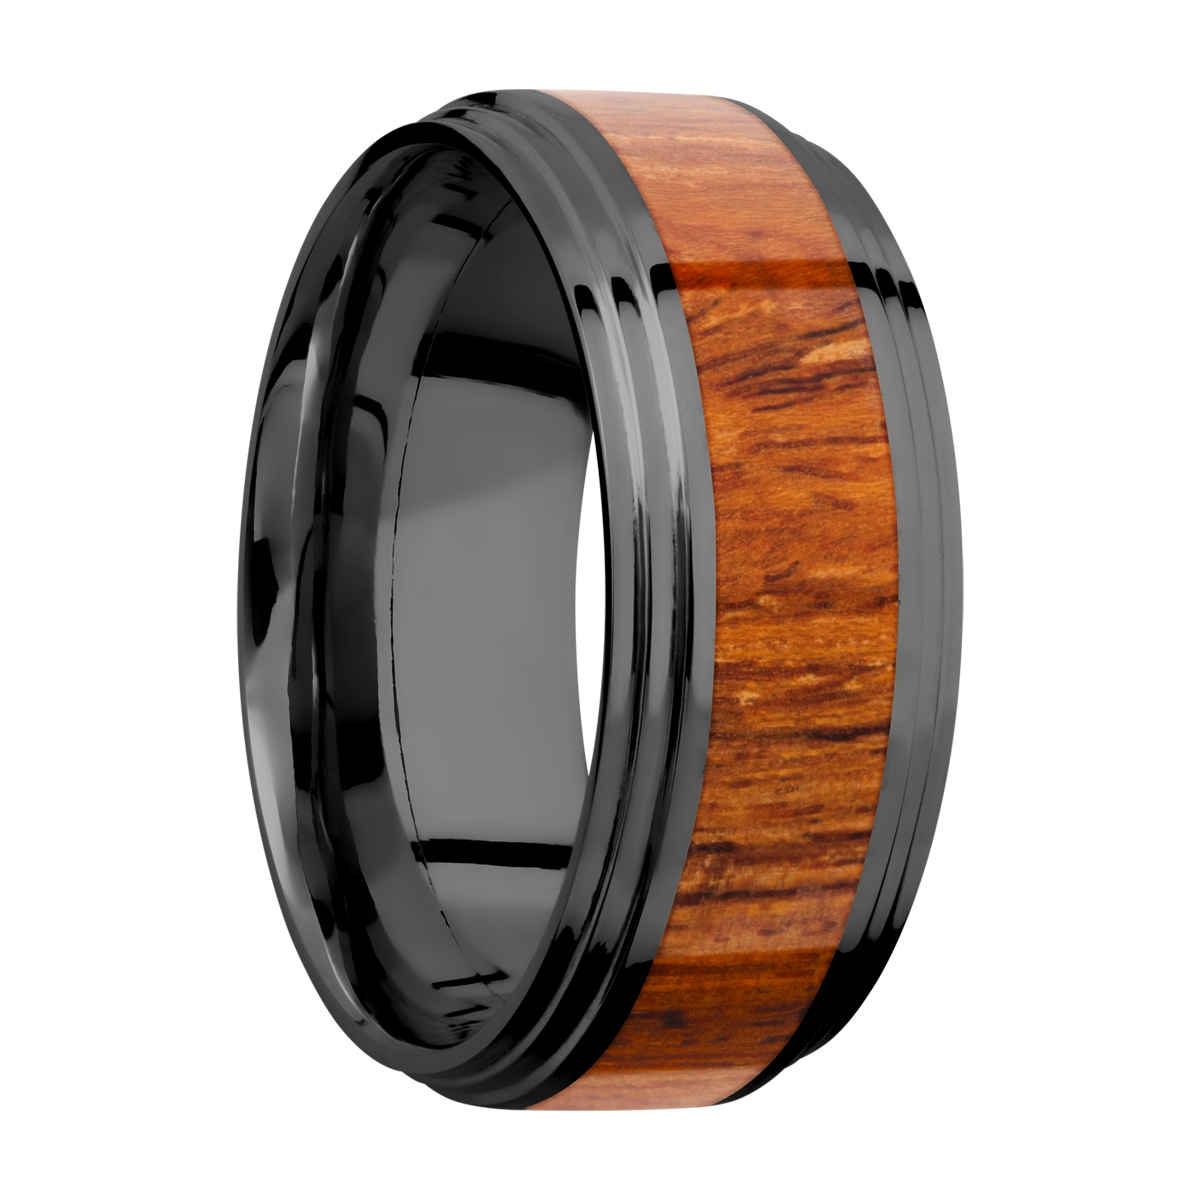 Lashbrook Z9F2S14/HARDWOOD Zirconium Wedding Ring or Band Alternative View 1